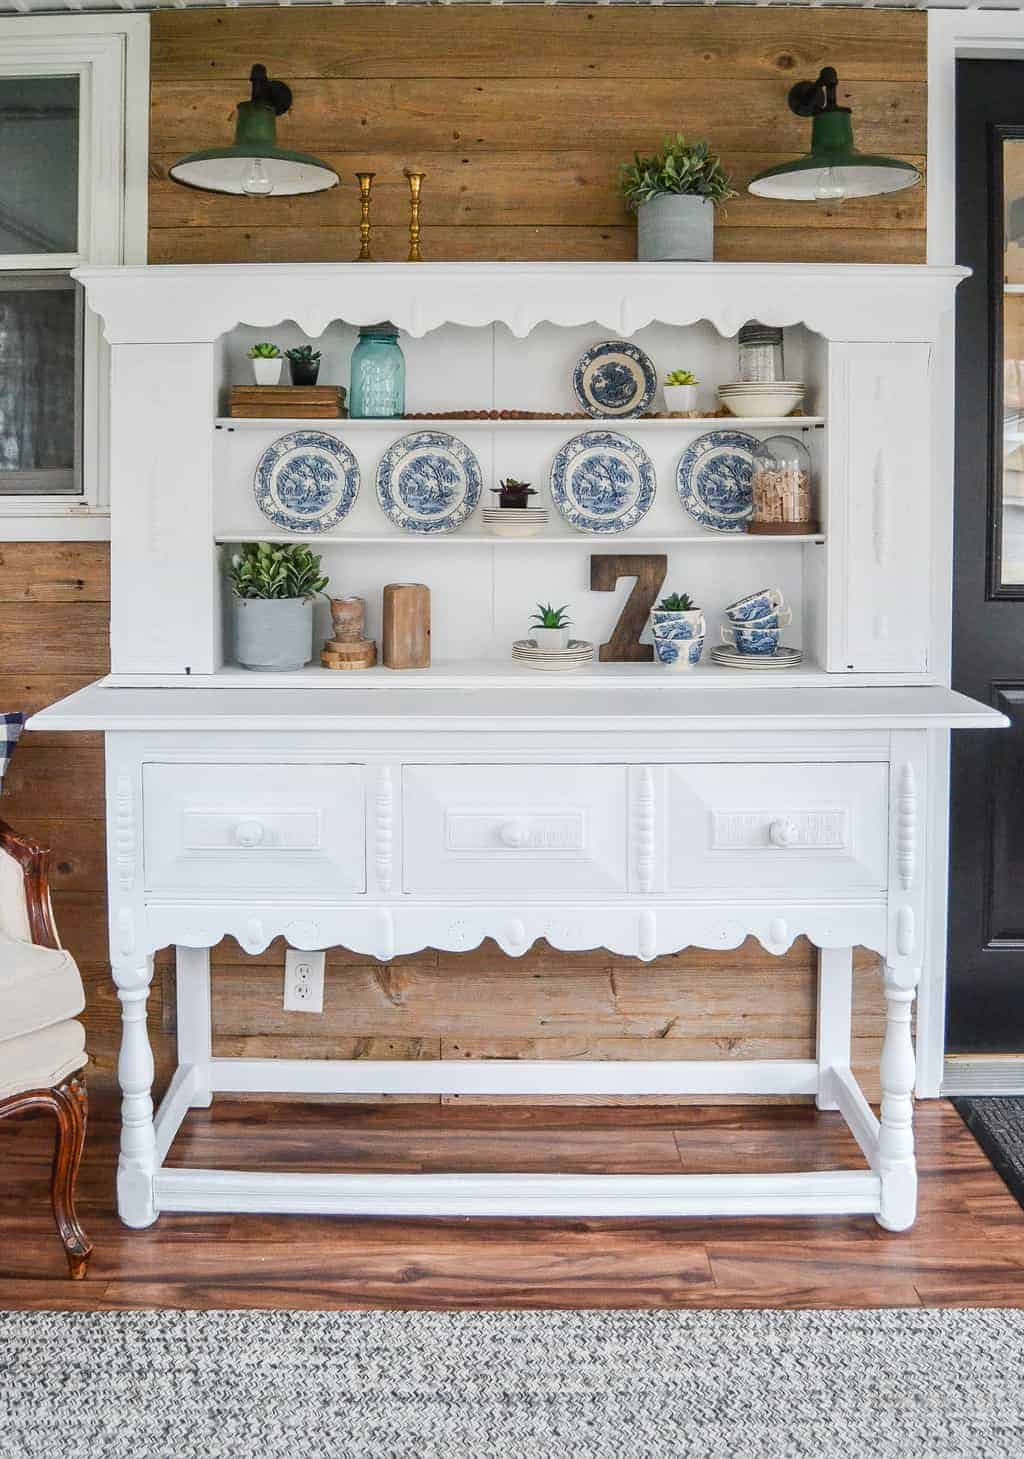 Merveilleux Pin This · If You Would Like To Start Painting Some Furniture Pieces, It Is  Very Important To